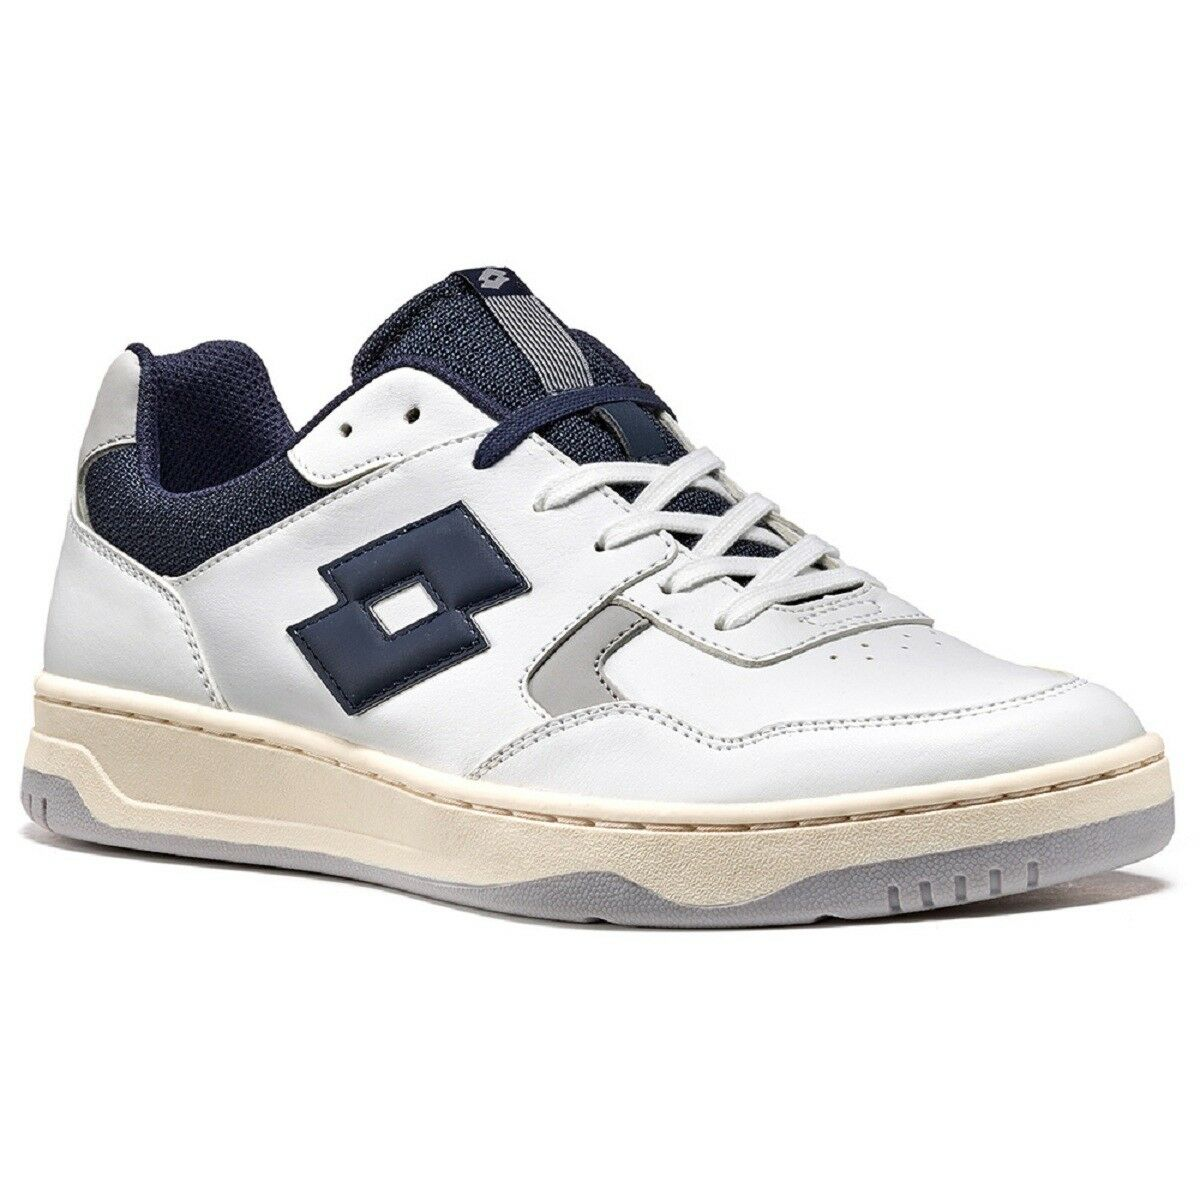 LOTTO T3943 Tracer White-Blu SNEAKERS MAN - Scarpe sportive uomo Running Shoes